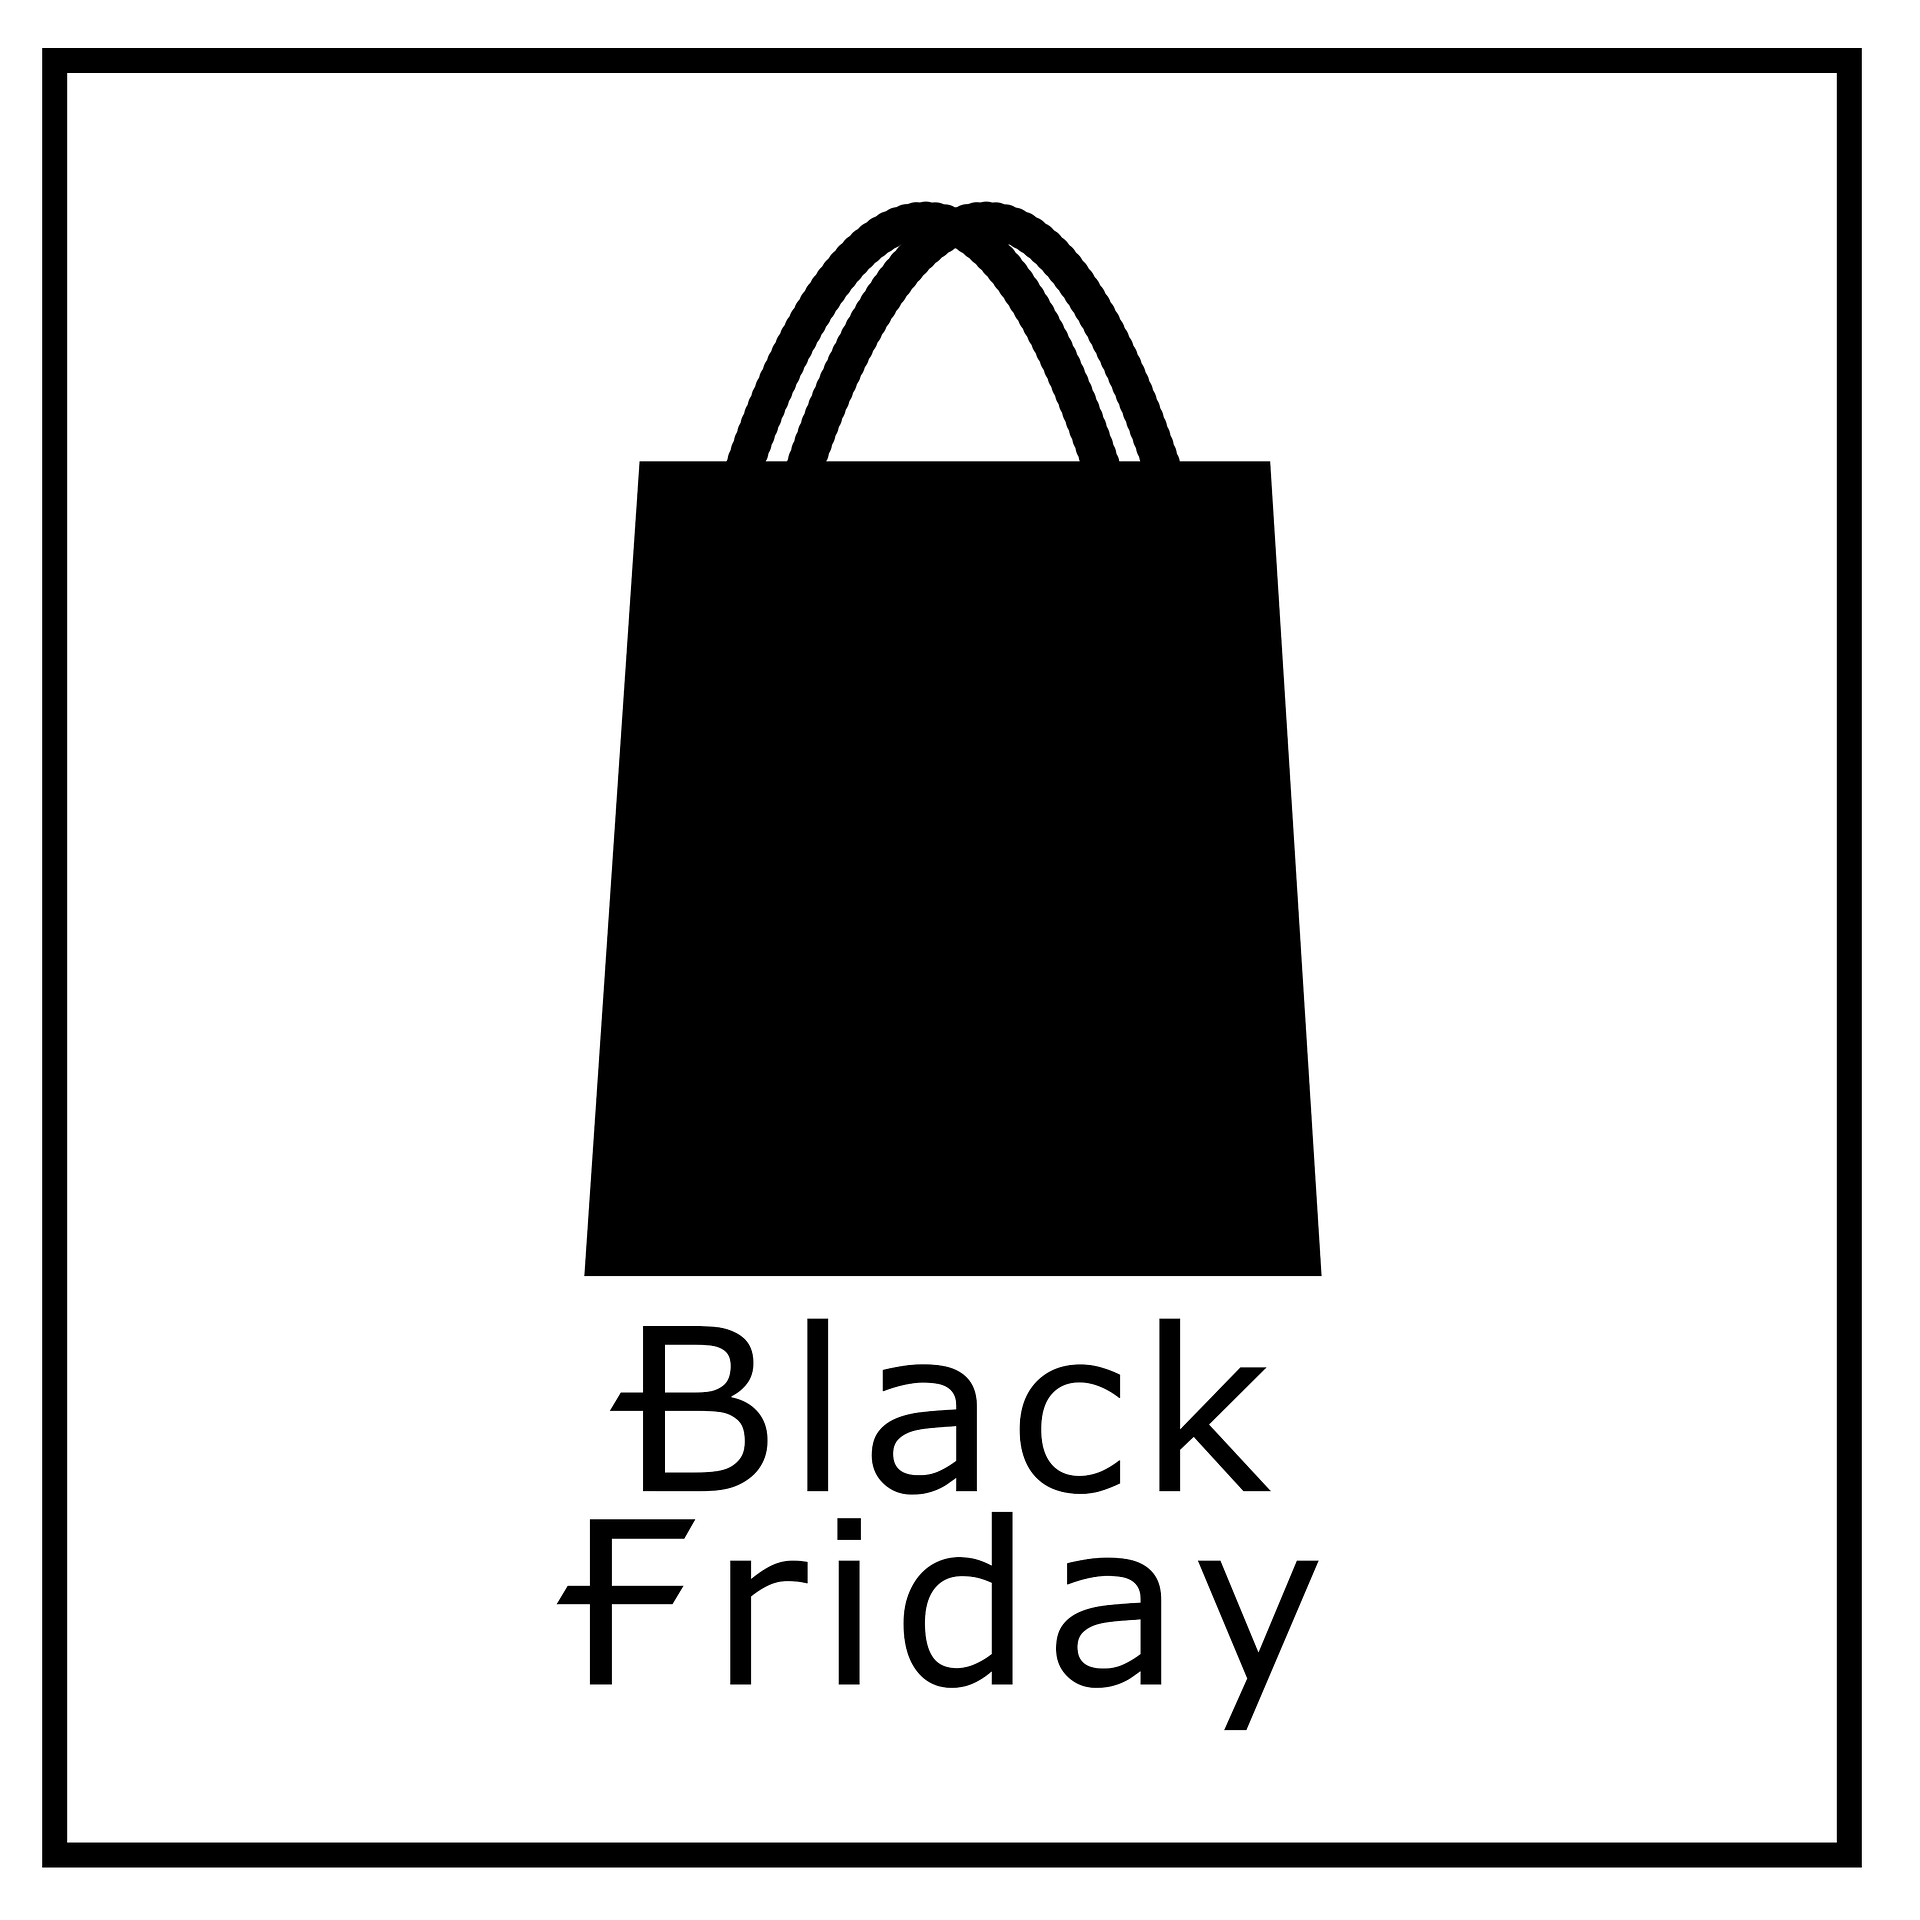 black-friday-2901754_1920